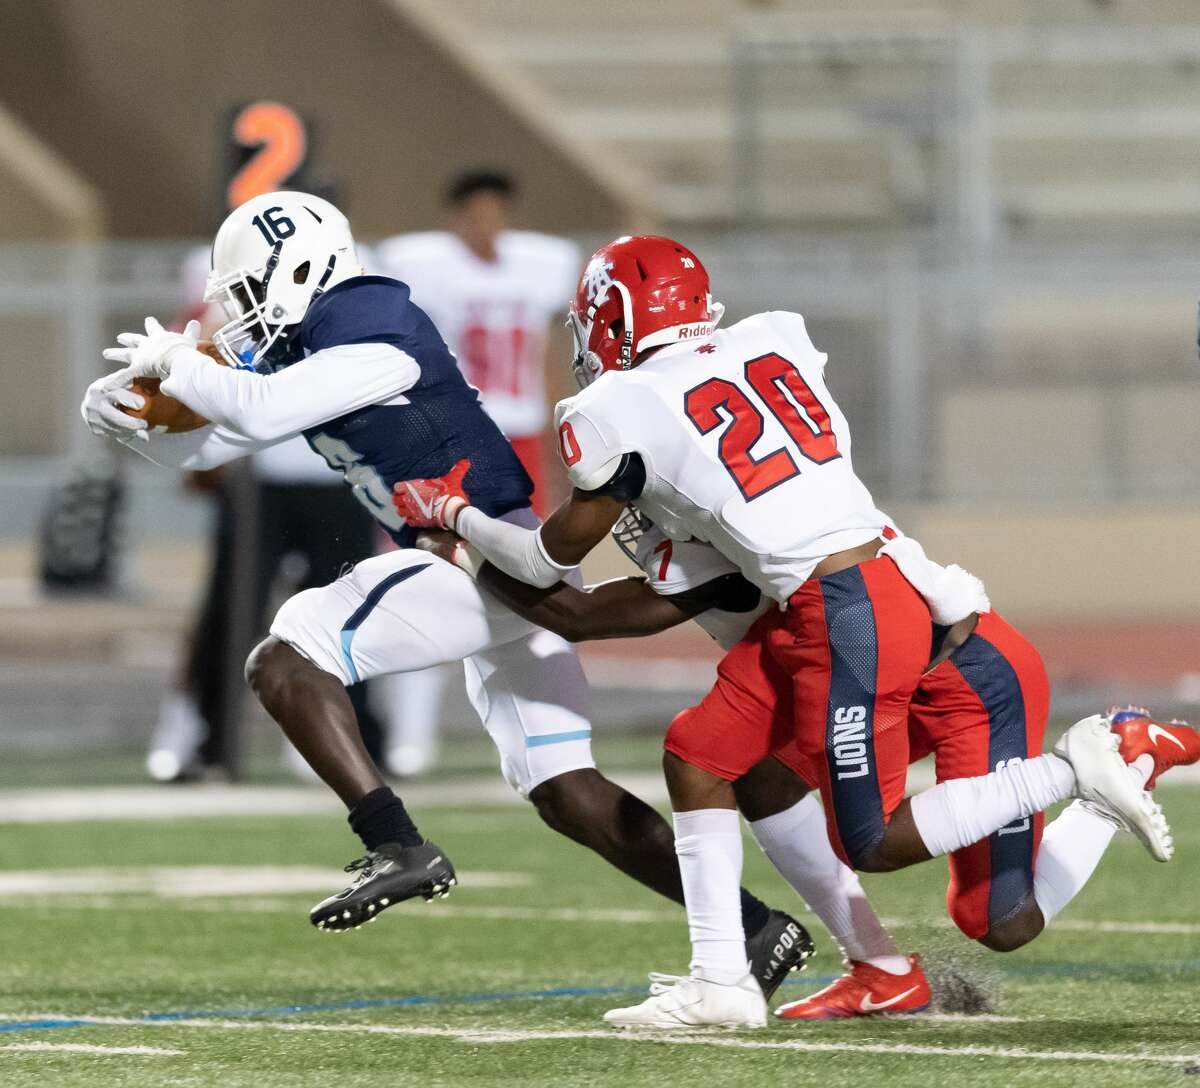 Joseph Nathaniel (16) of the Alief Elsik Rams is bright down in the first half after a short gain by Ekemini Ekwere (7) and Justin Jones (20) of the Alief Taylor Lions during a High School football game on Friday, October 16, 2020 at Crump Stadium in Houston Texas.